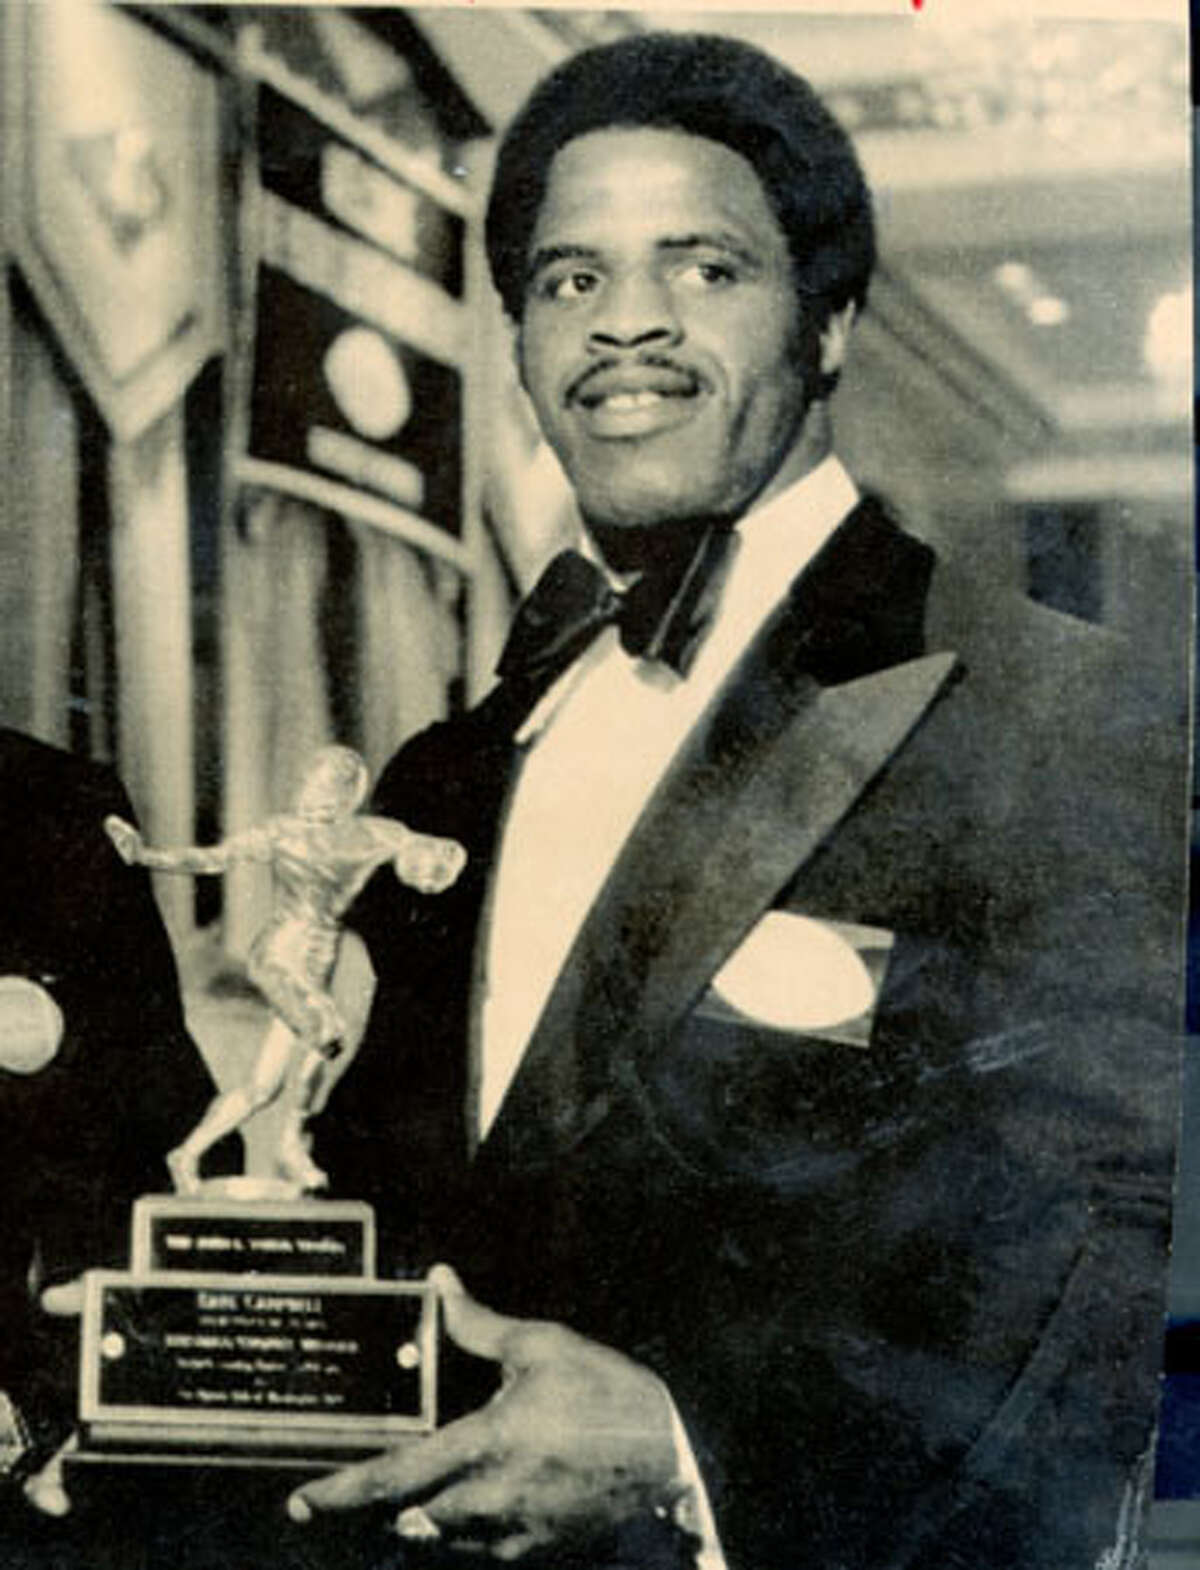 Earl Campbell won the 1977 Heisman Trophy after rushing for 1,744 yards and 18 TDs as Texas won the Southwest Conference with an 11-0 record. Campbell rushed for 222 yards in the regular-season finale against Texas A&M and was the No. 1 overall pick in the 1978 NFL Draft by the Houston Oilers. The Texas great rushed for 116 yards in the 1978 Cotton Bowl, but his top-ranked Longhorns lost to eventual national-champion Notre Dame 38-10. Source: attcottonbowl.com